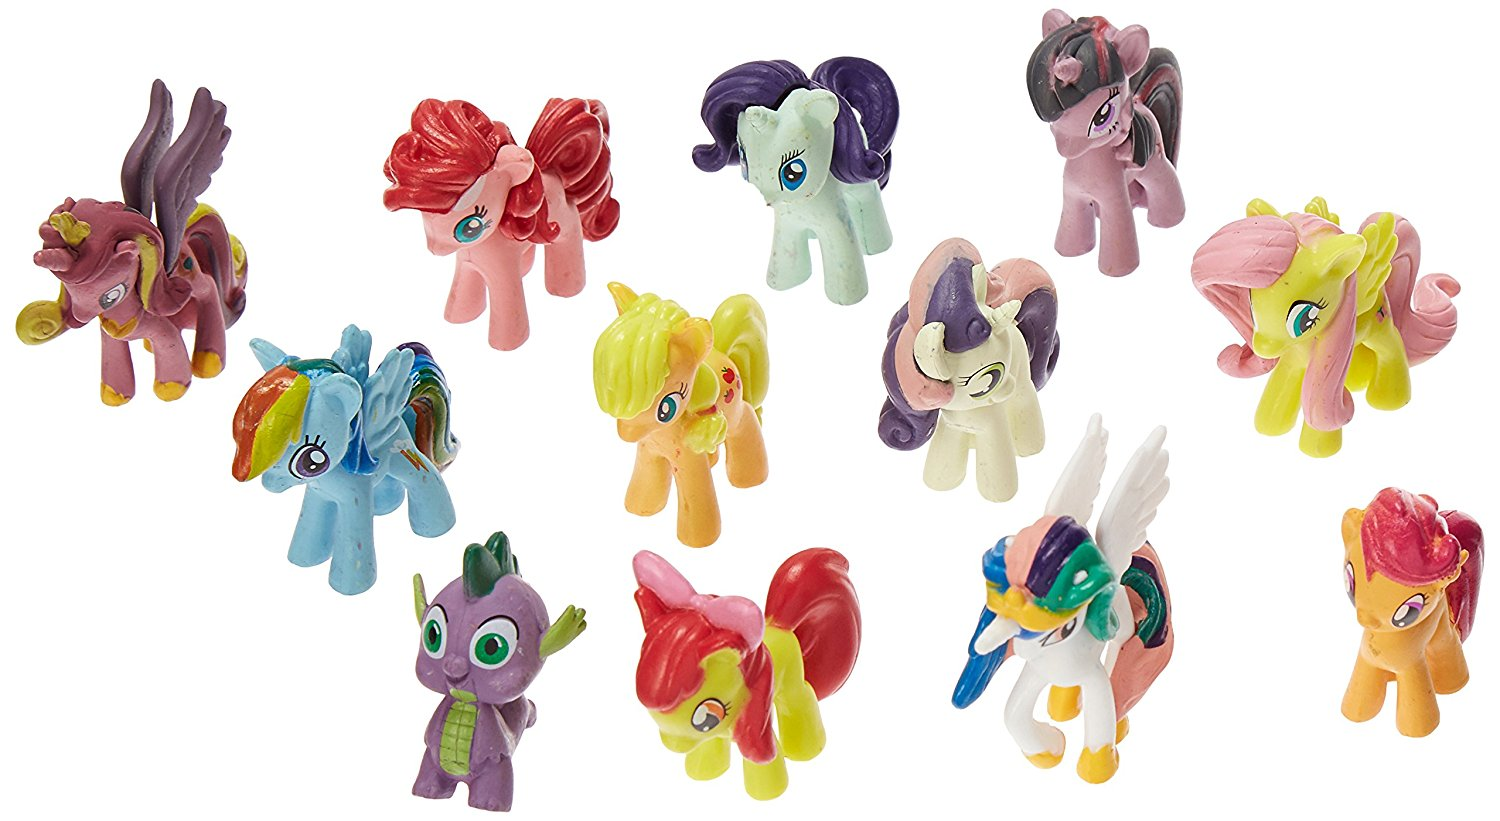 [EU Direct] Win8Fong NEW My Little Pony Cake Toppers Cupcake 12 piece Set Toys Figurines Playset